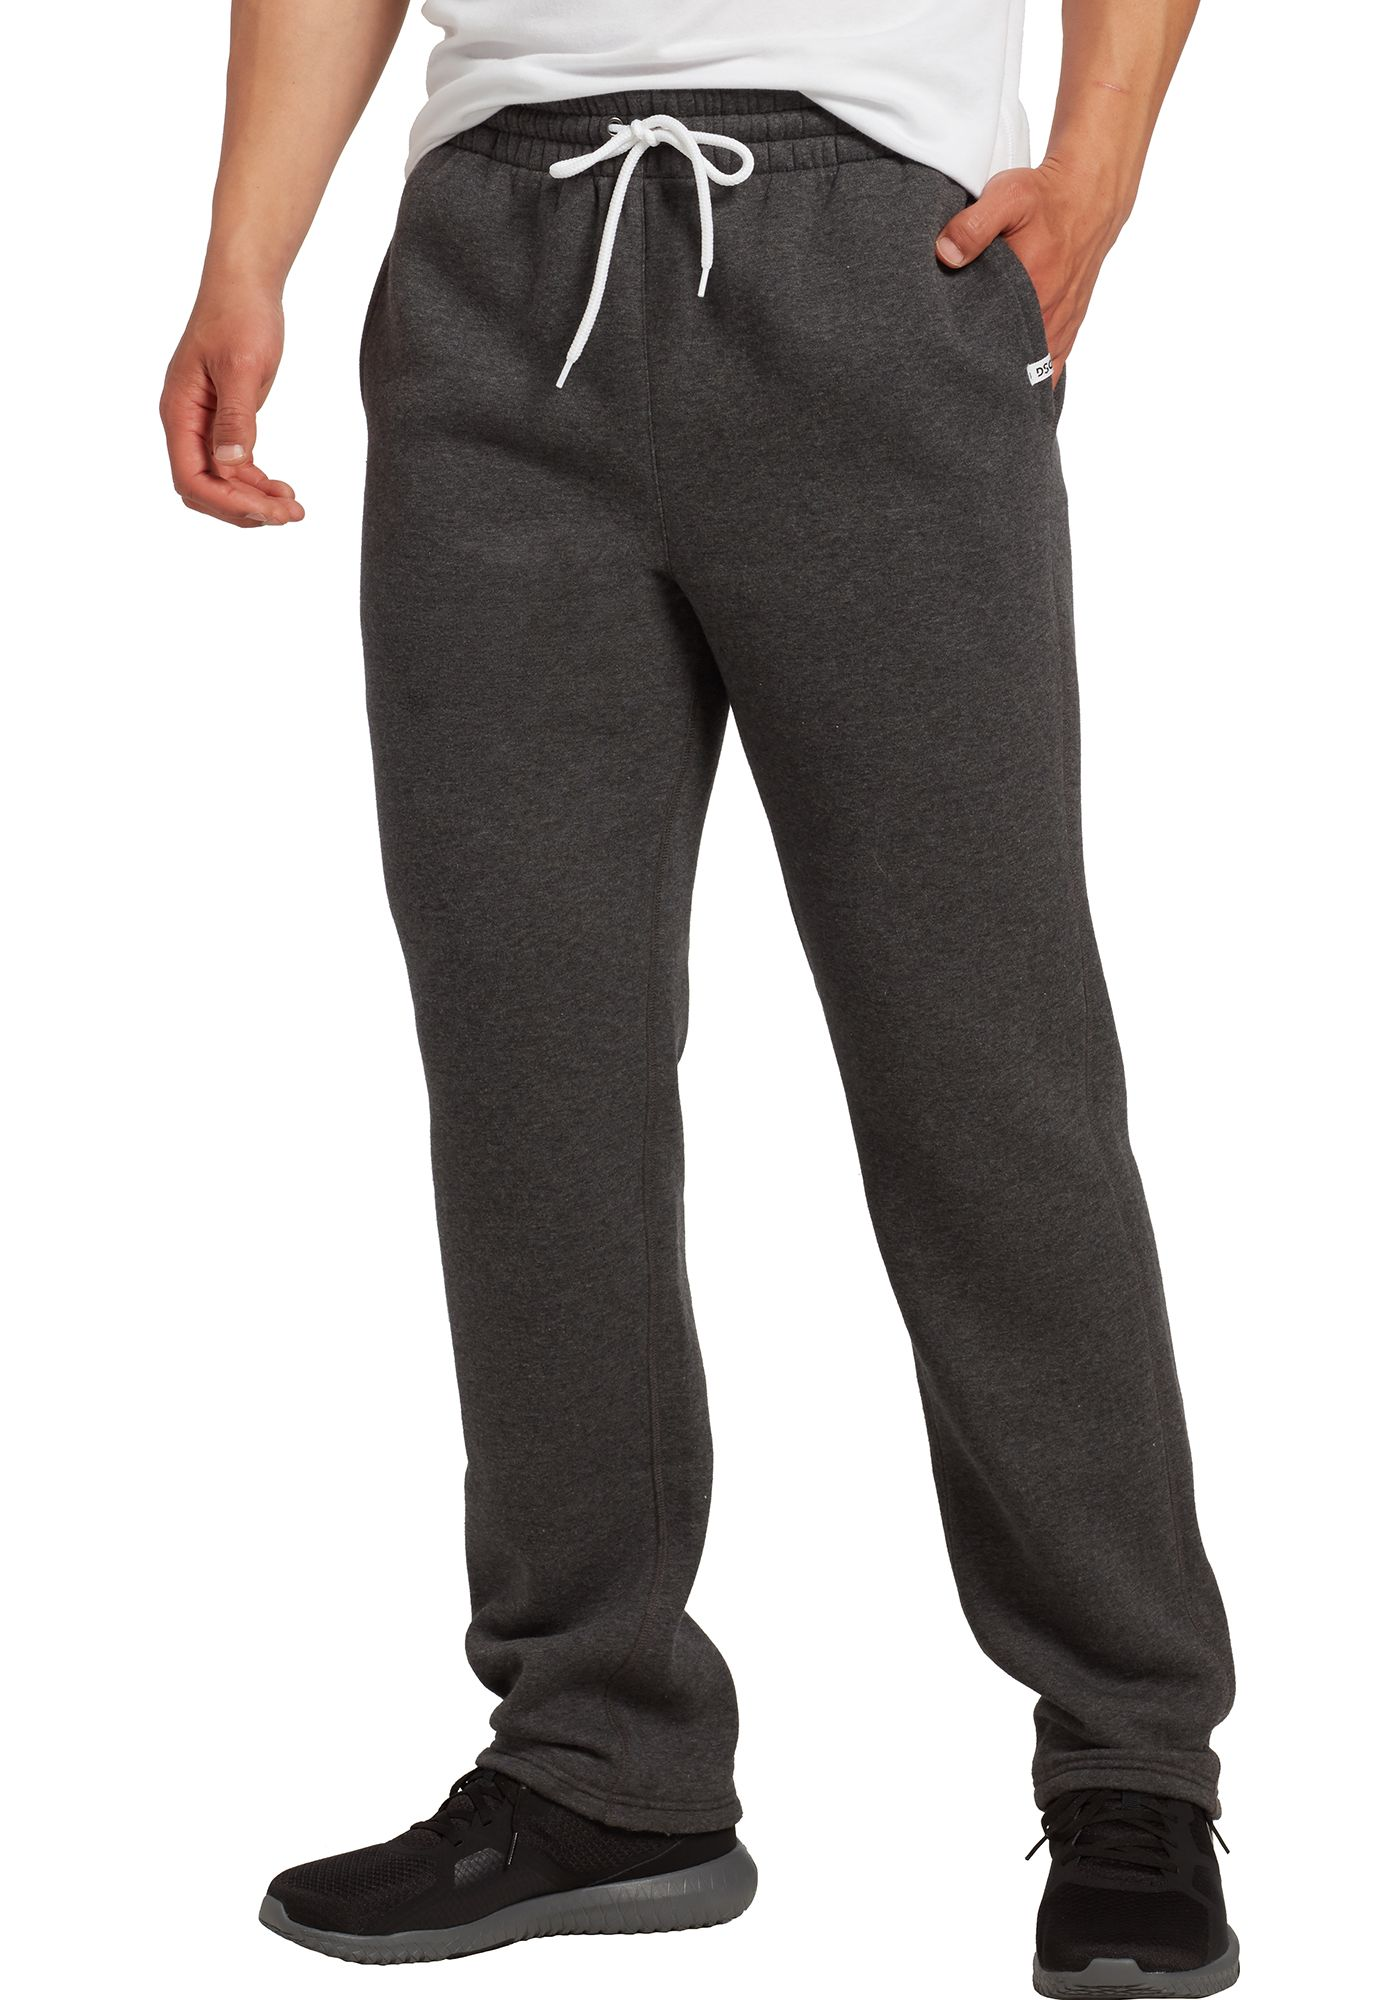 DSG Men's Everyday Cotton Fleece Pants